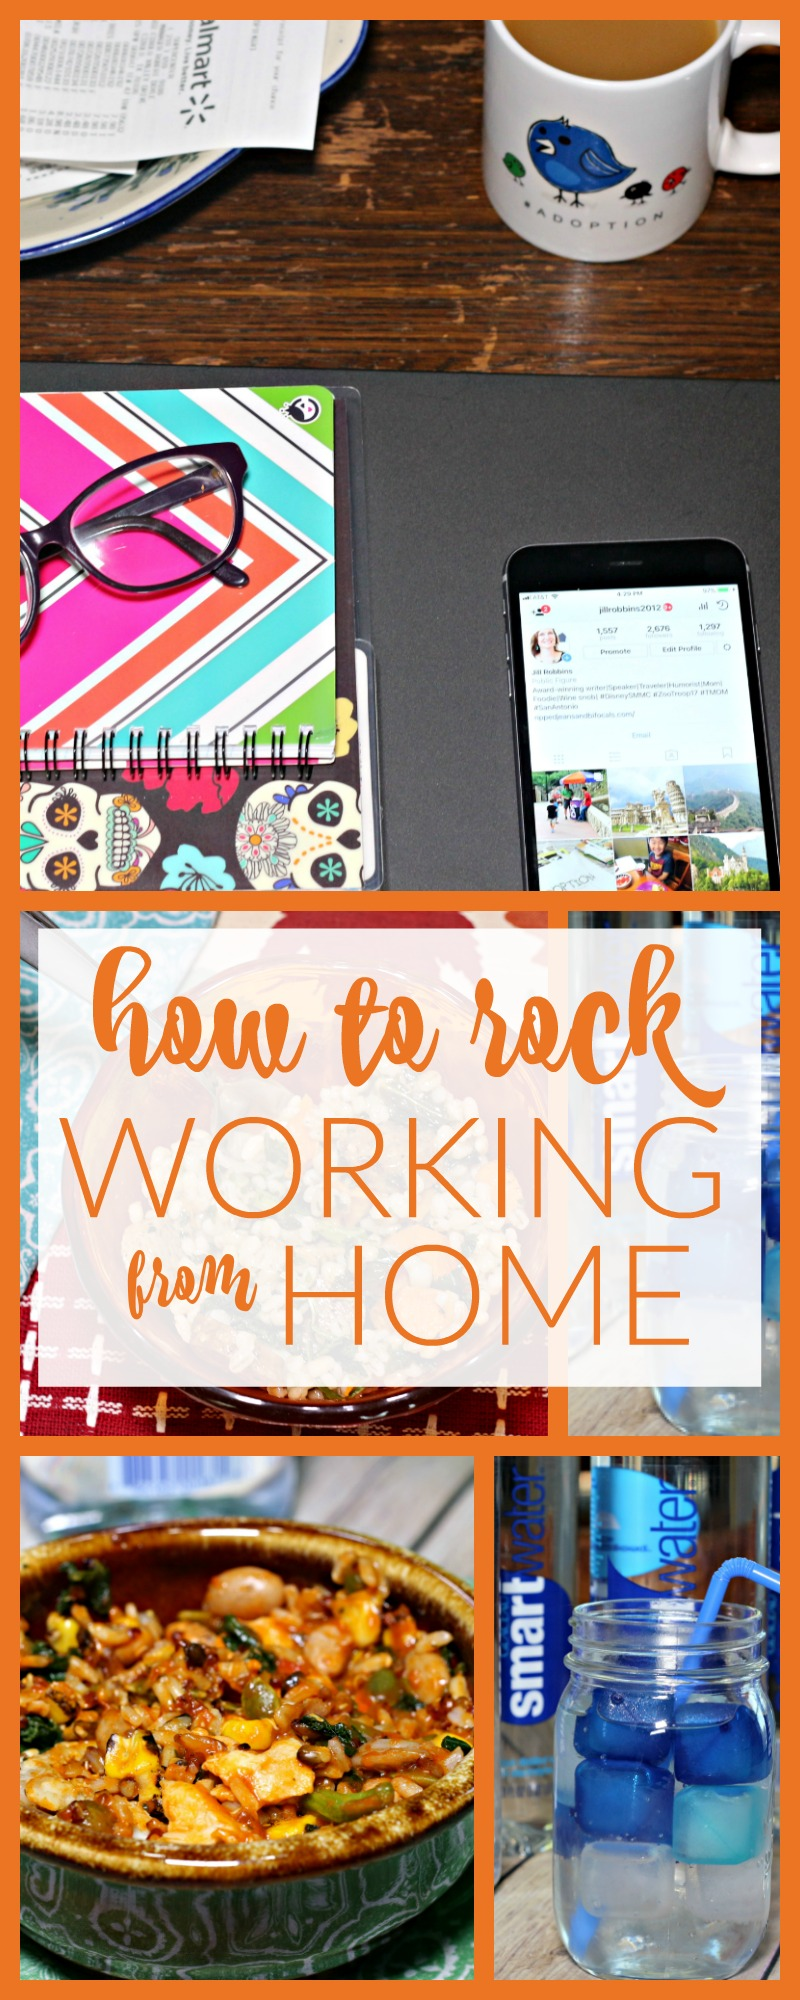 How to rock working from home|Ripped Jeans and Bifocals